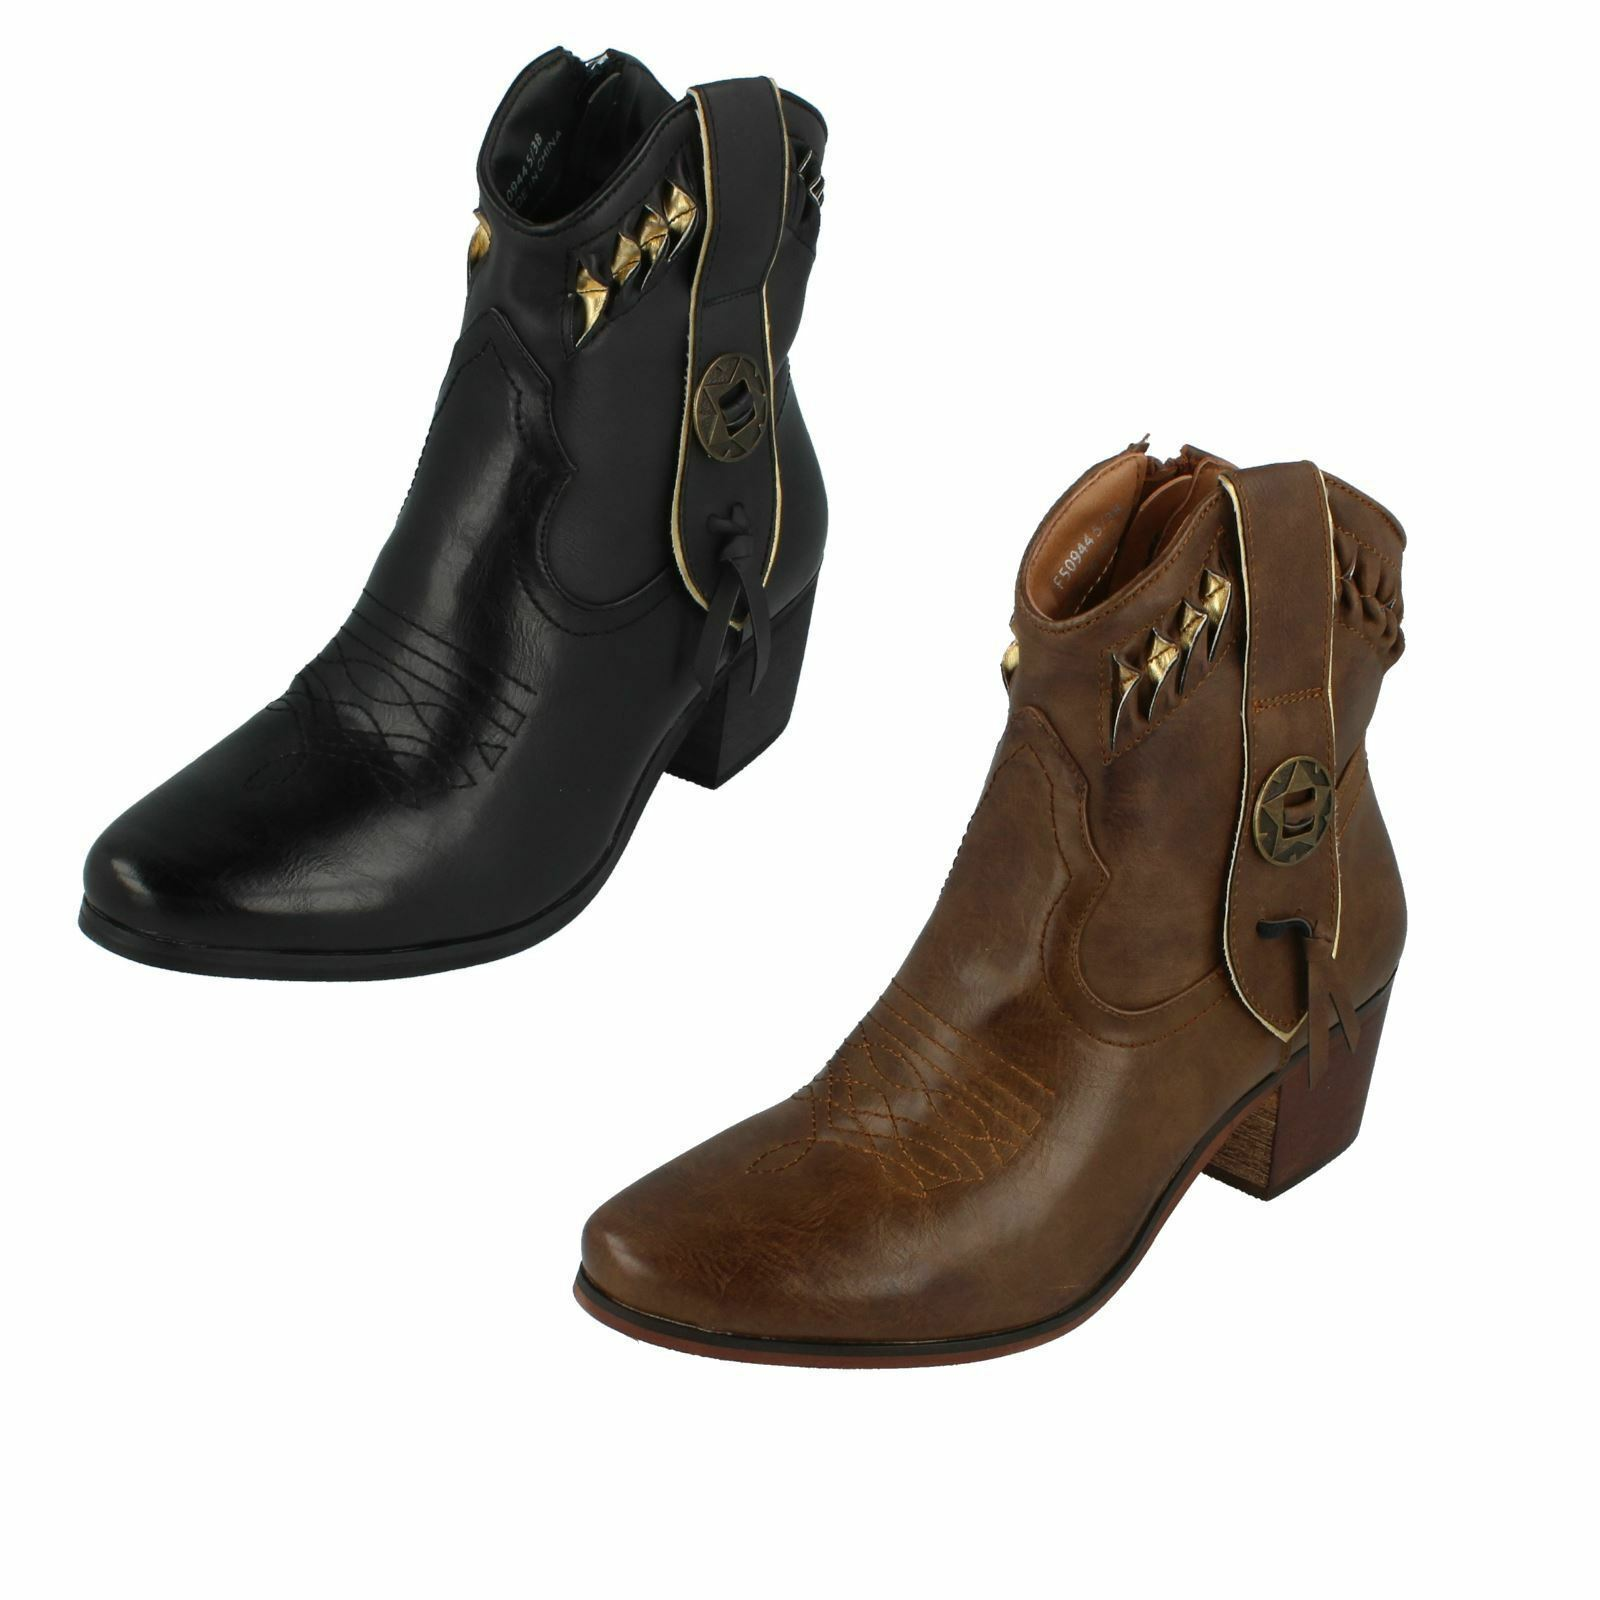 DOWN TO EARTH F5R0944 SMART COWBOY COWBOY COWBOY STYLE LADIES ANKLE BOOTS WARM WINTER ZIP UP 1432b5